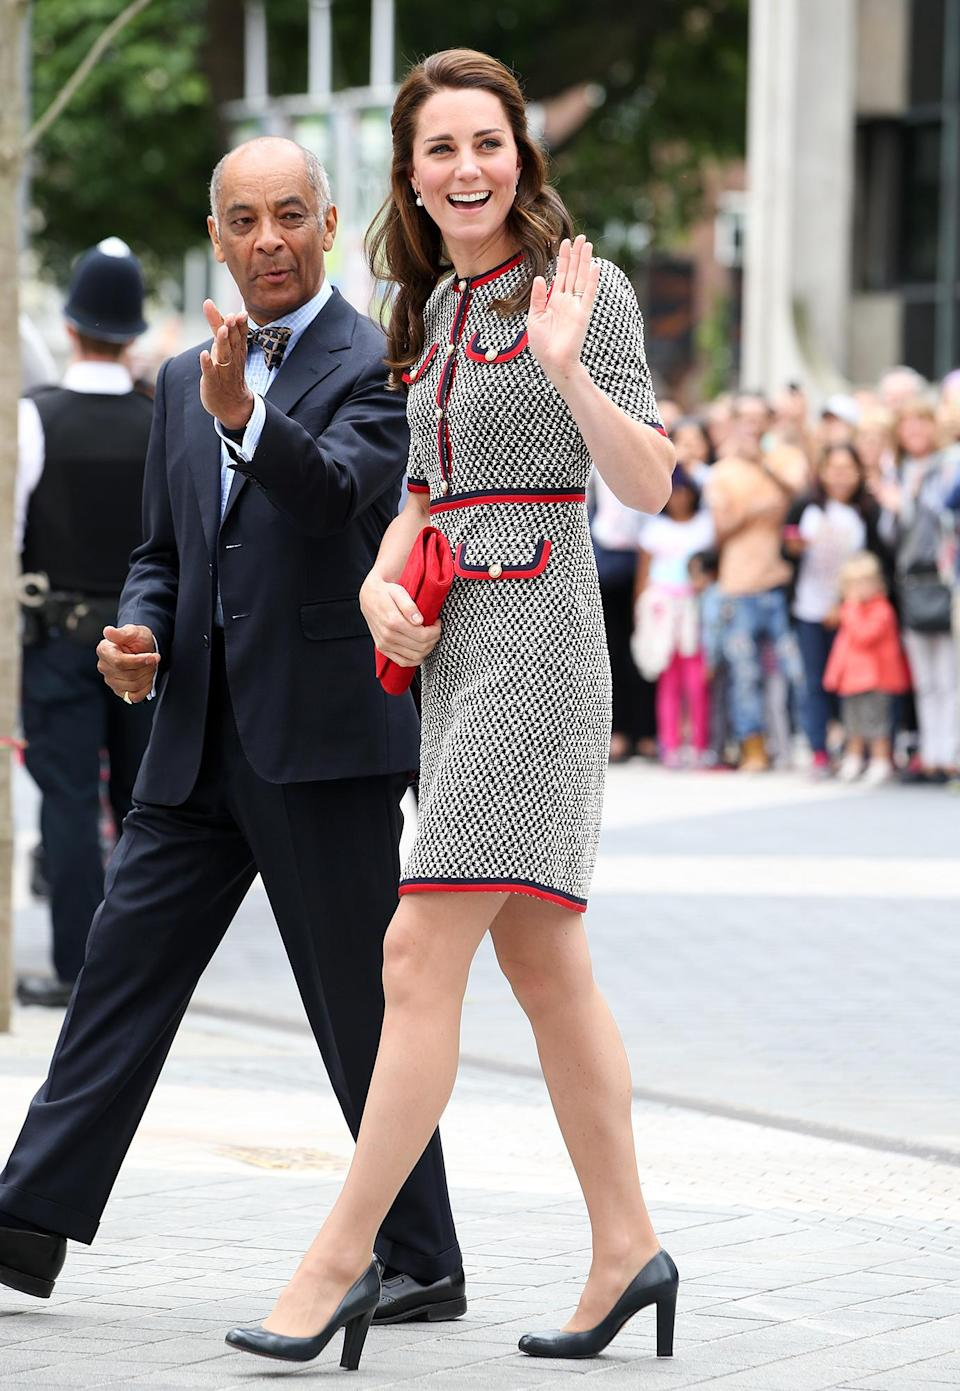 <p><strong>When:</strong> June 29, 2017 <strong>Where:</strong> The unveiling of a commemorative plaque to mark the opening of the V&A Exhibition Road Quarter in London. <strong>Wearing:</strong> Gucci wool silk dress <strong>Get the Look:</strong> Gucci Wool Silk Dress with Web, $2,700; <span>neimanmarcus.com</span> Karl Lagerfeld Paris Sleeveless Tweed Dress, $128; <span>lordandtaylor.com</span> Boden Heather Tweed Dress, $83.20; <span>bodenusa.com</span></p>